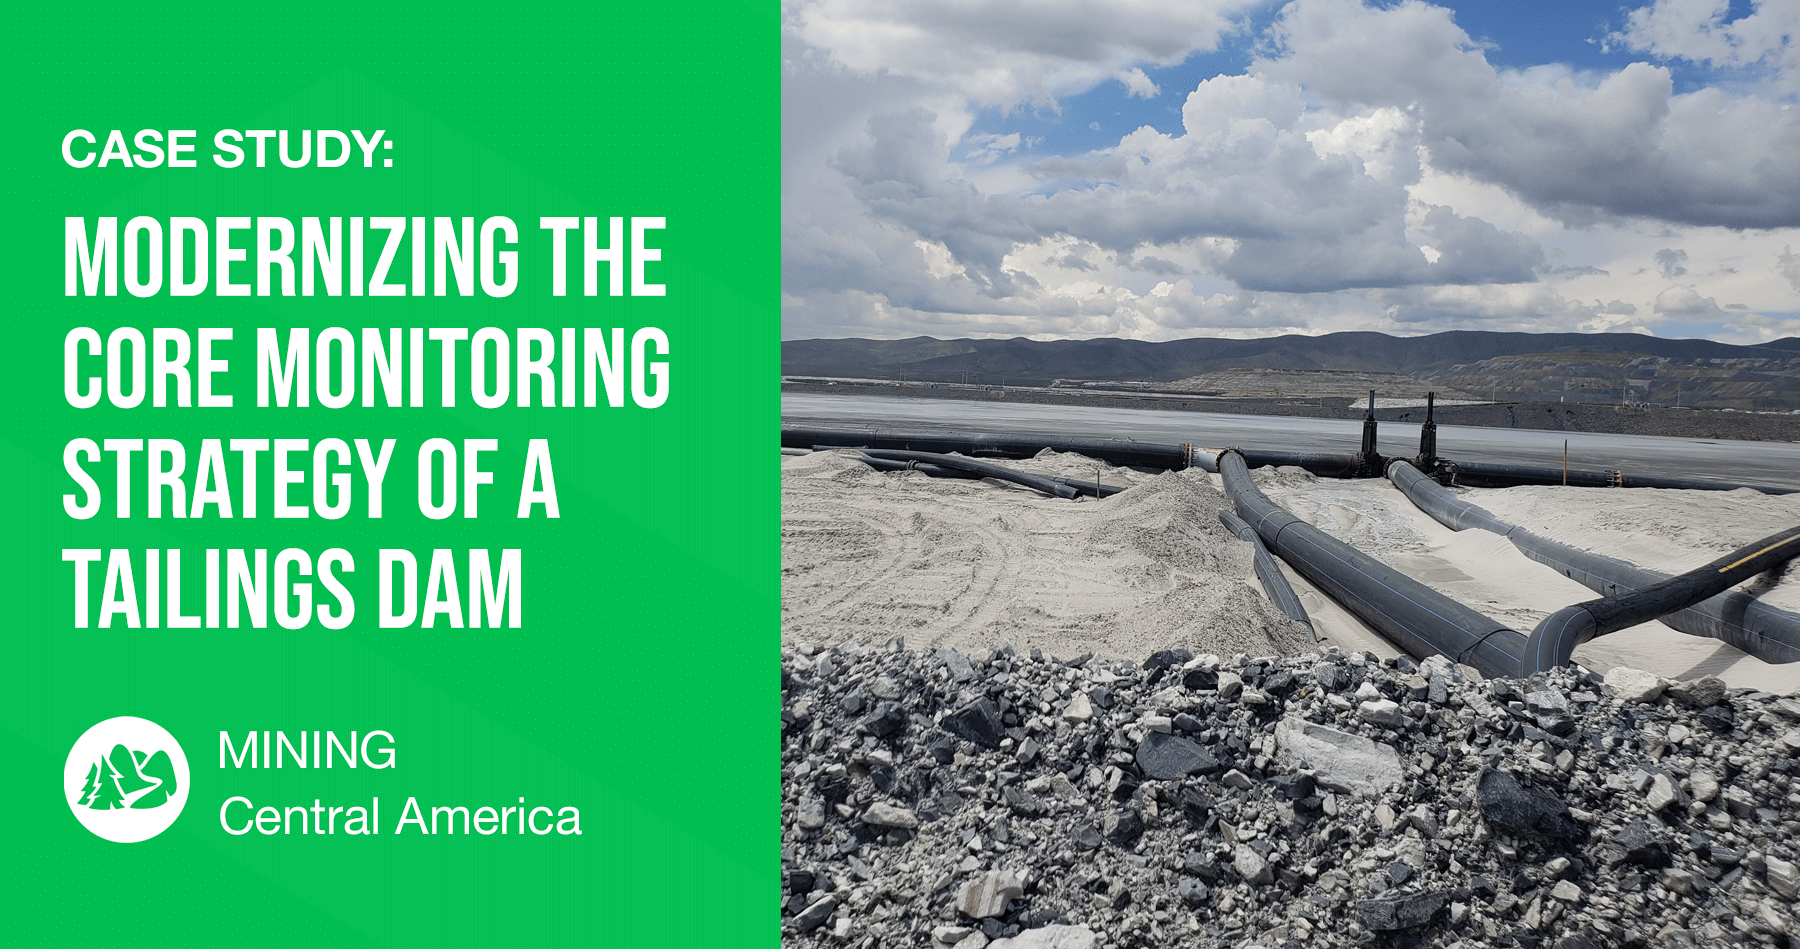 Modernizing the Core Monitoring Strategy of A Tailings Dam